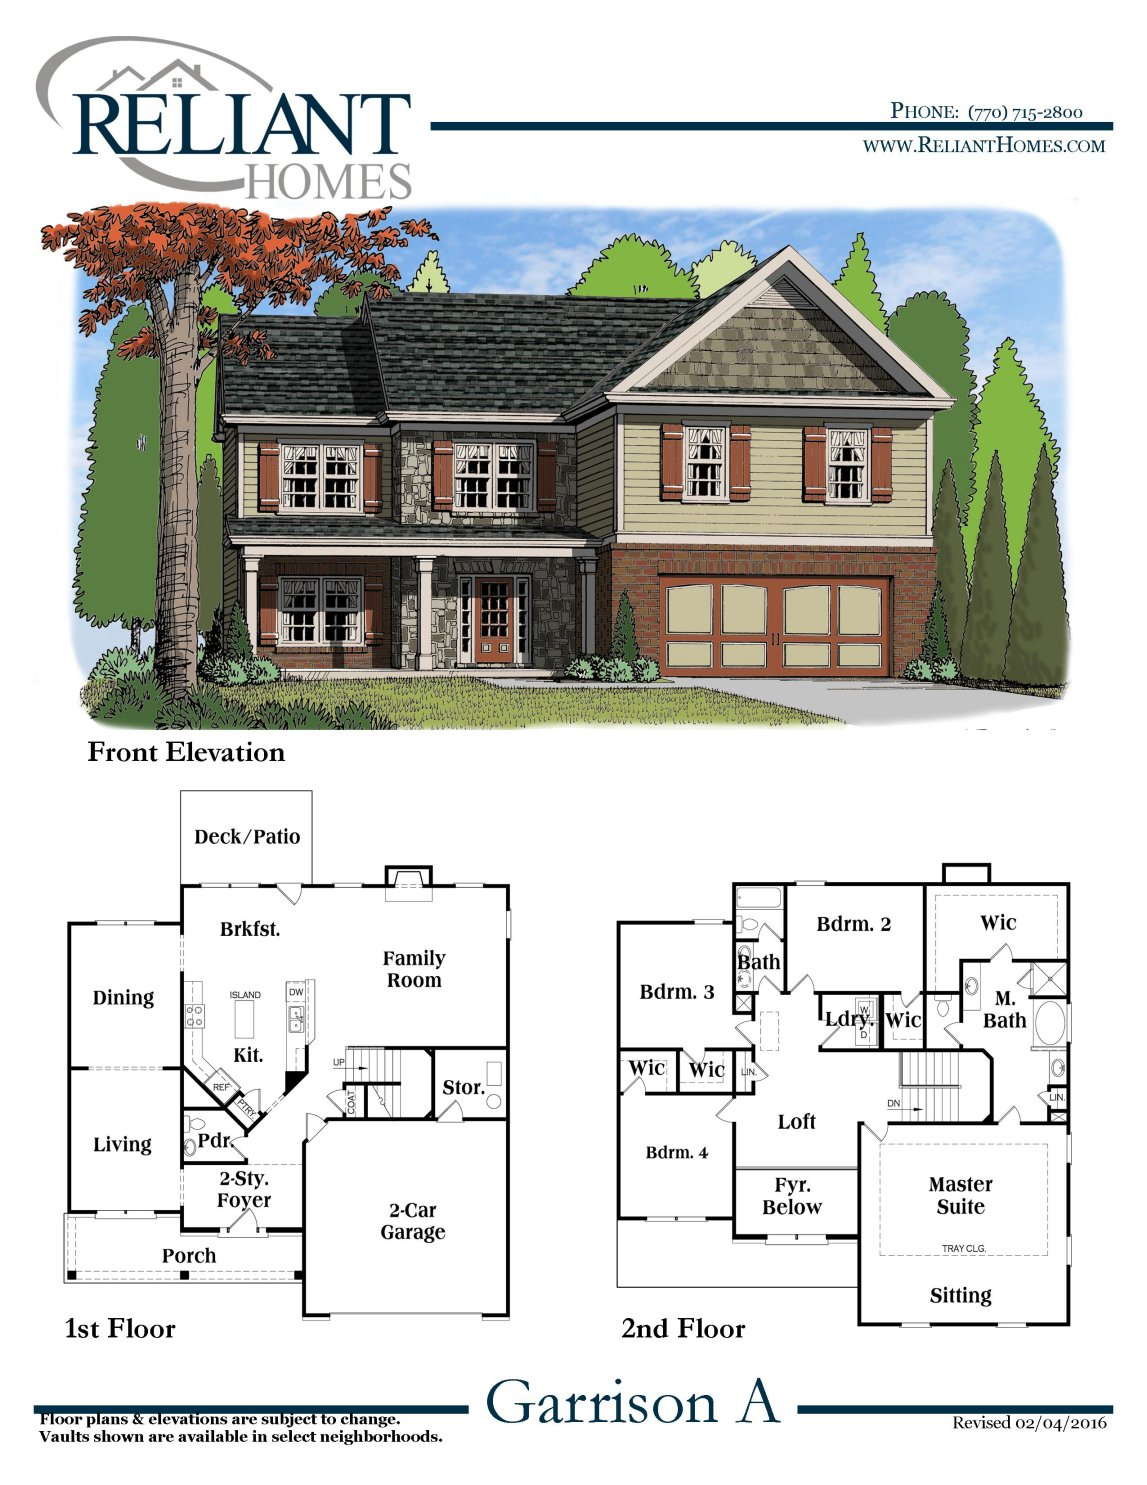 Garrison a fe reliant homes new homes in atlanta for Reliant homes floor plans